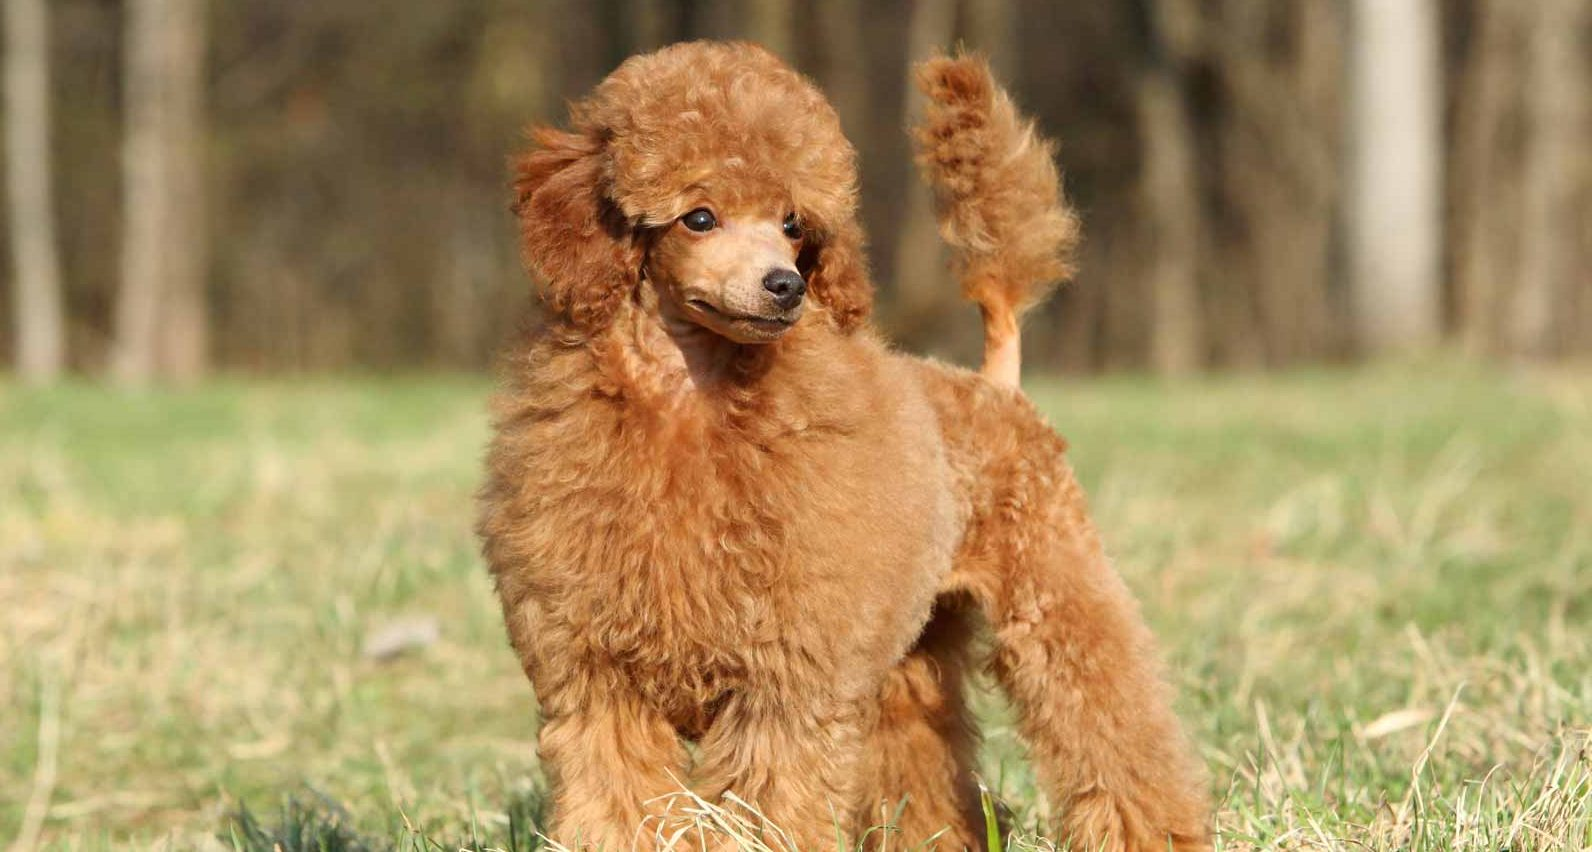 Toy Poodle Puppies For Sale - Toy Poodles | Greenfield